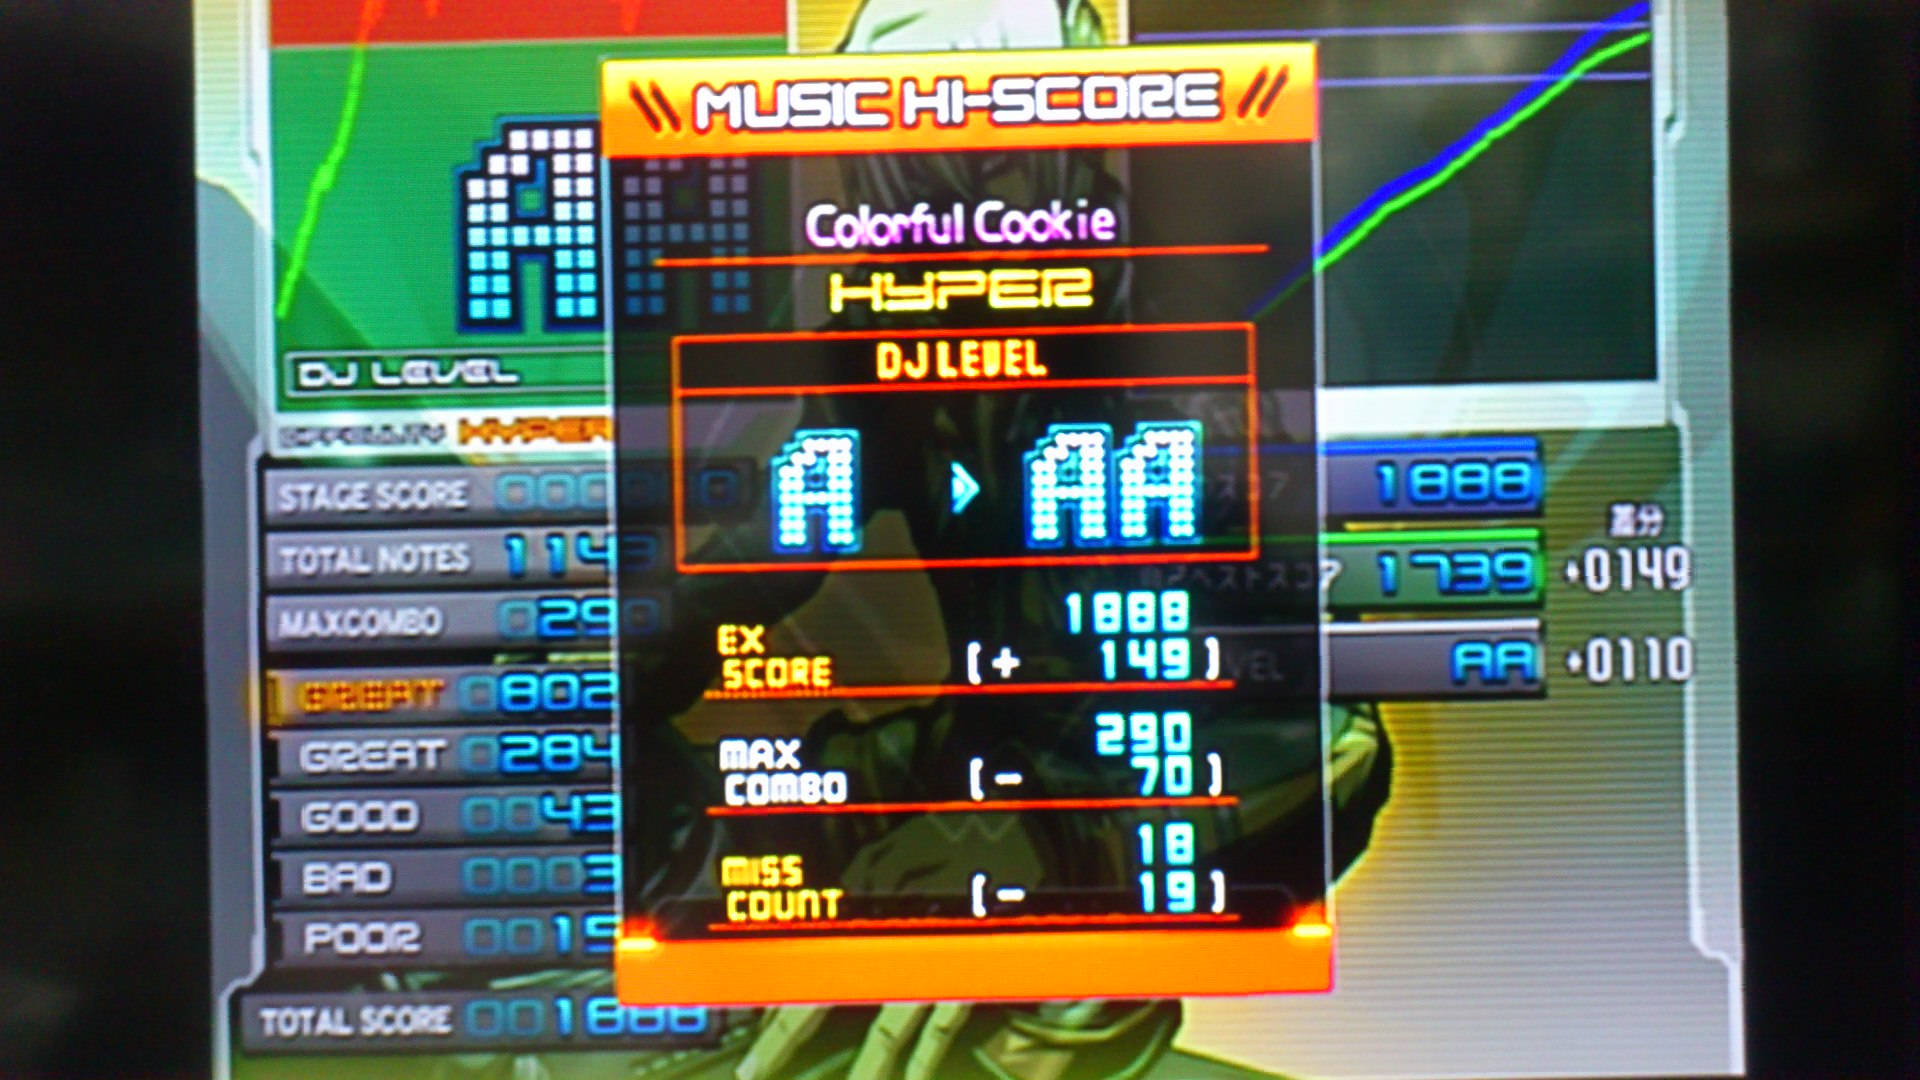 Colorful Cookie灰AA